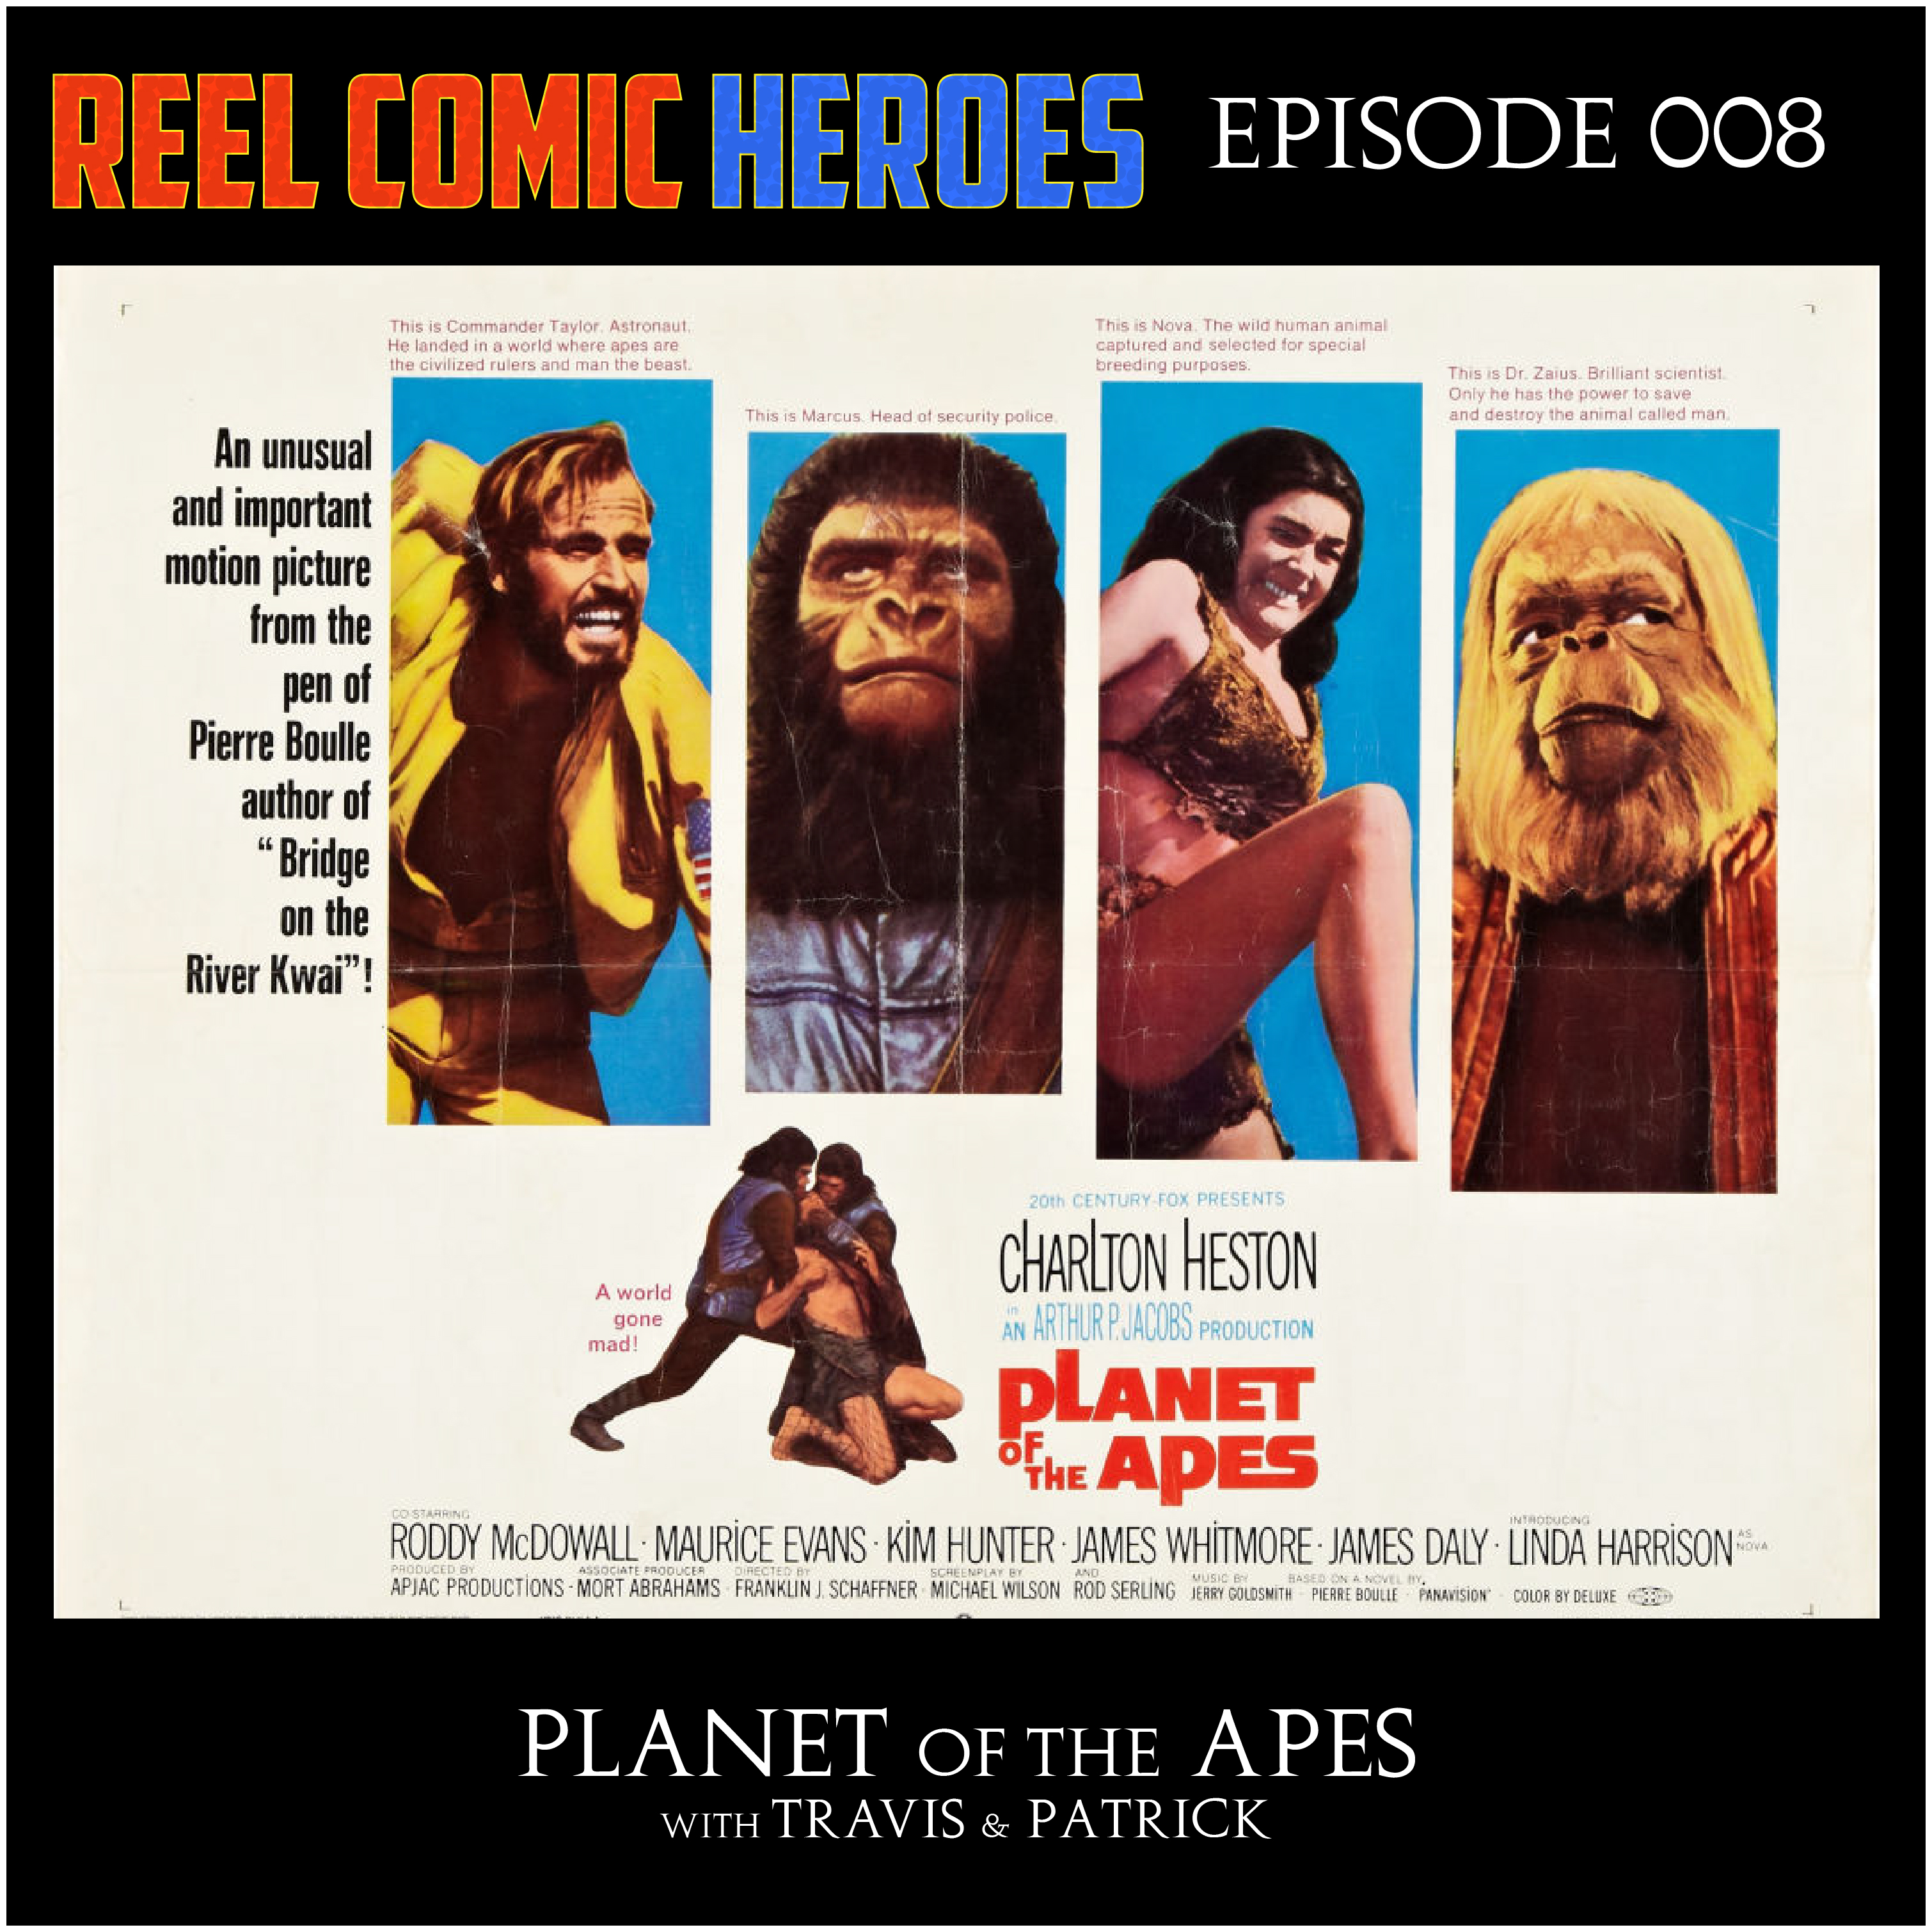 Artwork for Reel Comic Heroes 008 - Planet of the Apes